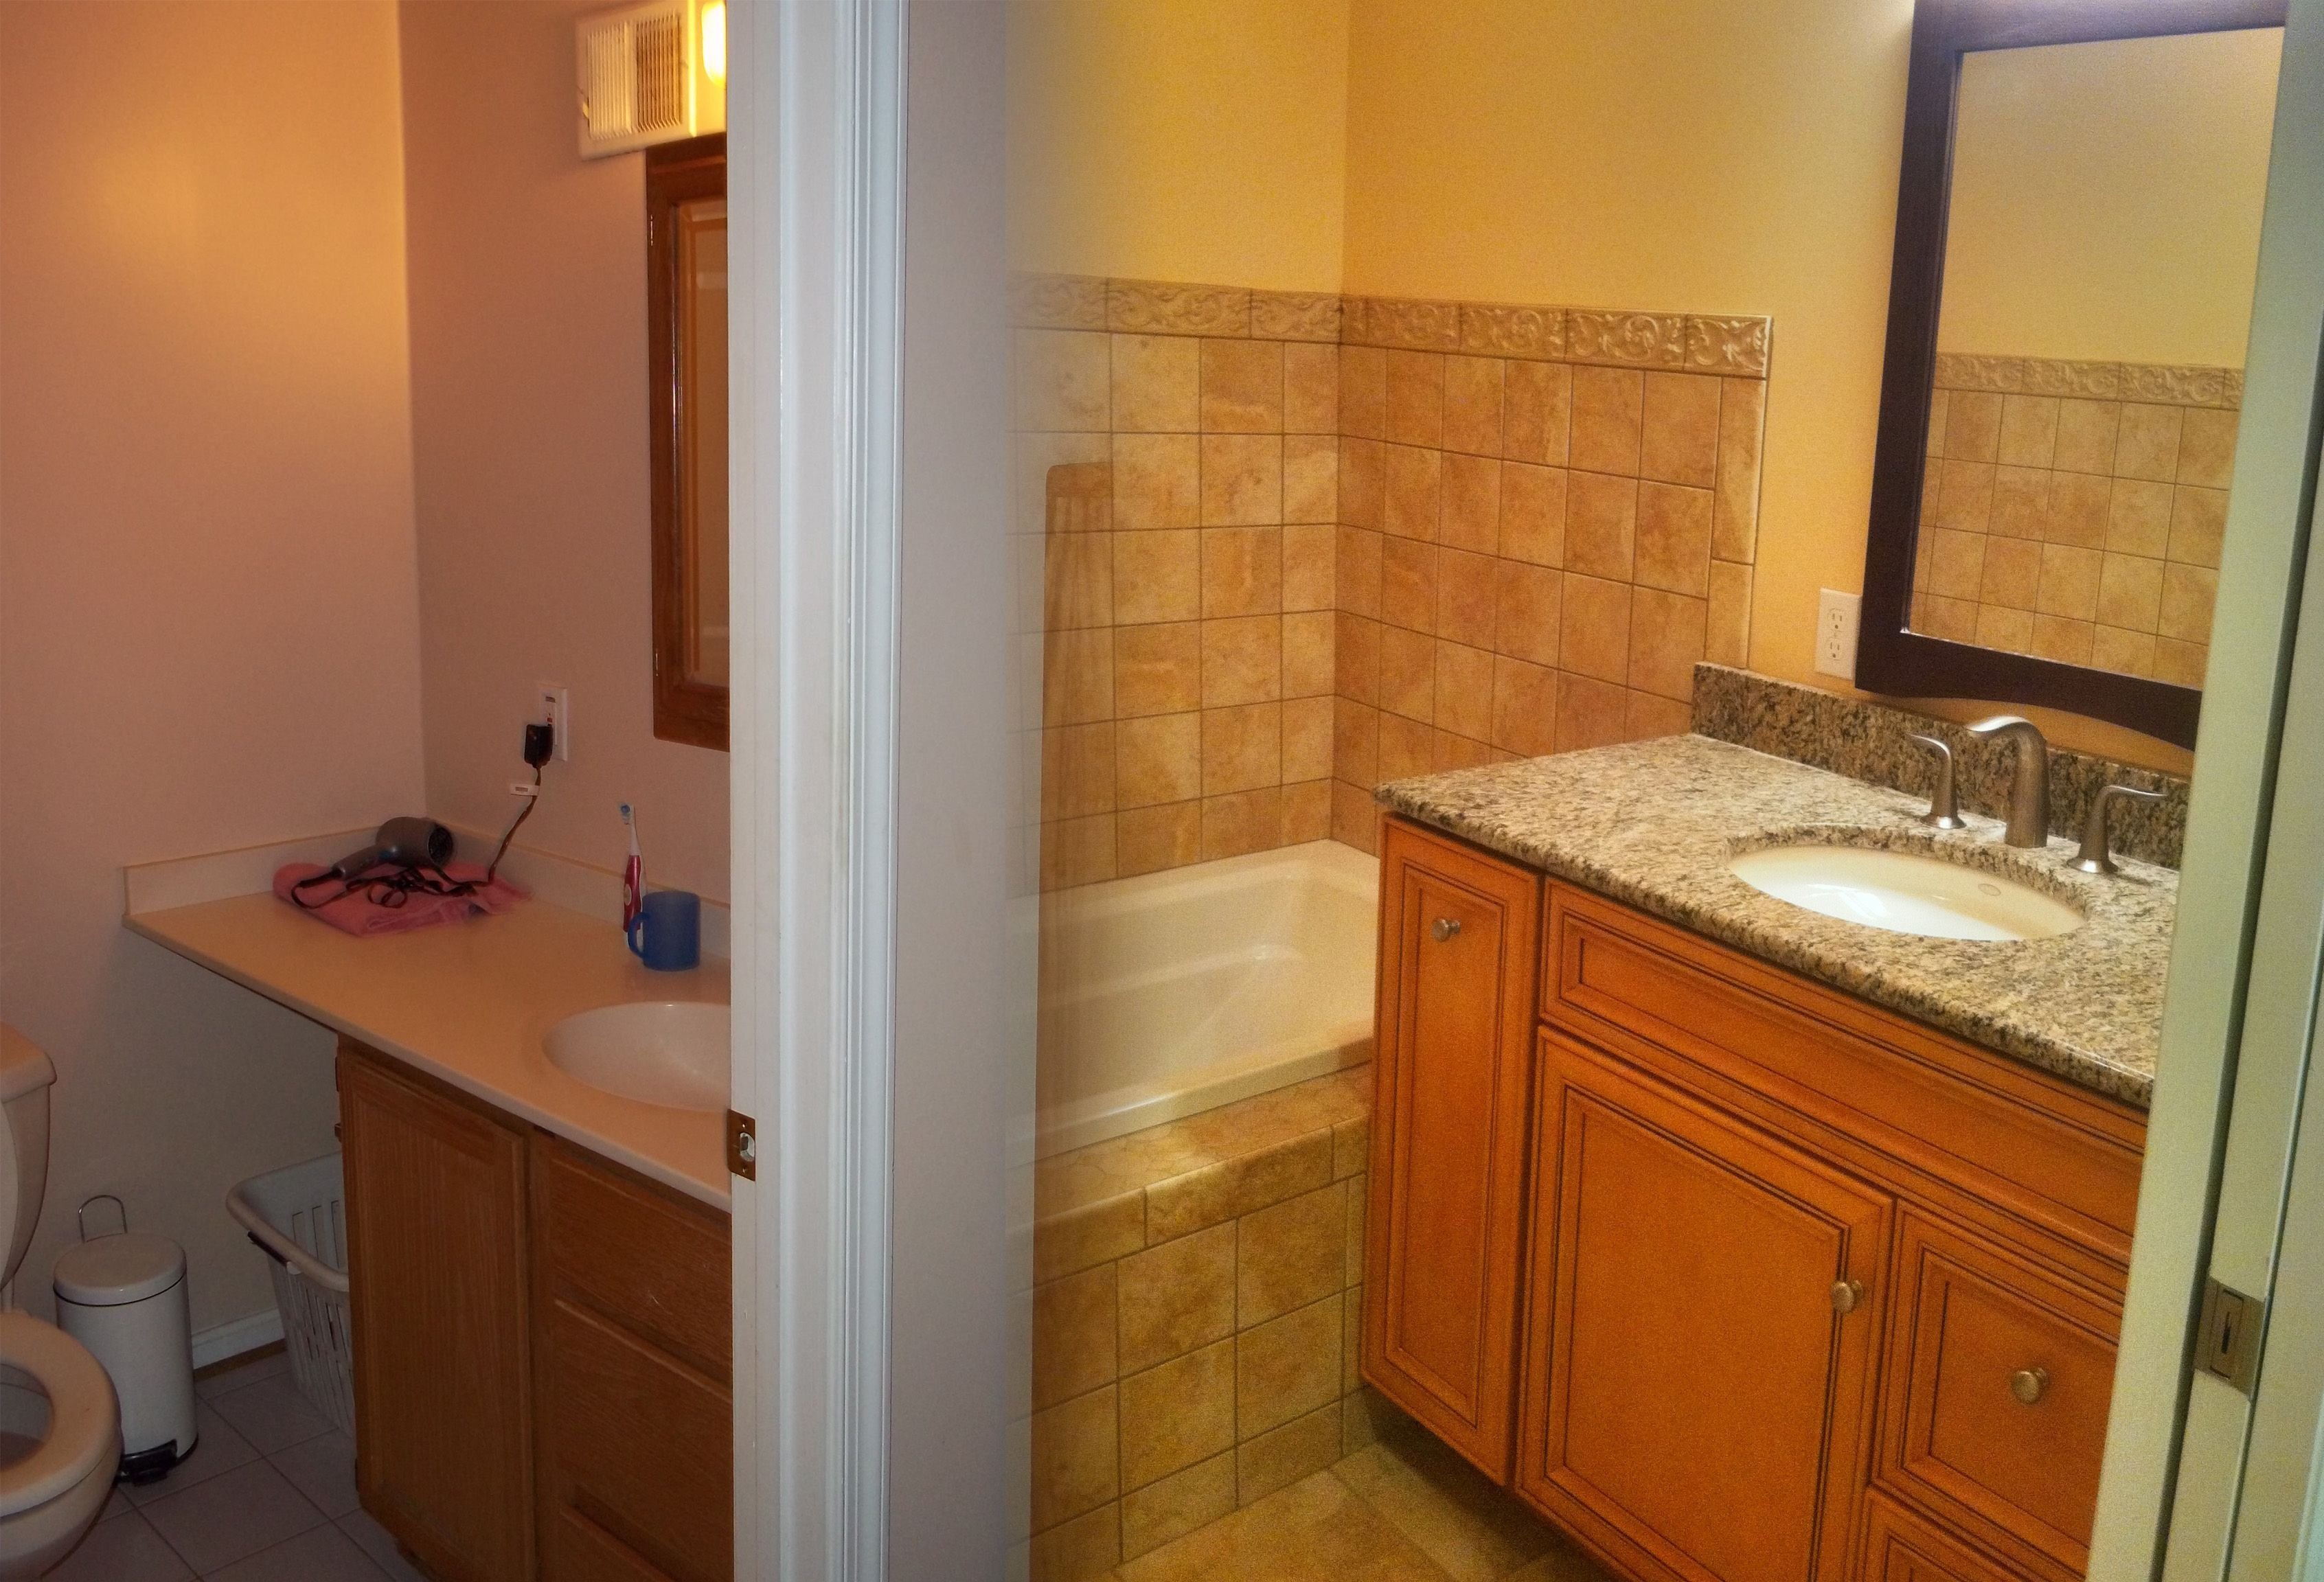 1960s bathroom renovation before and after for Home remodeling ideas bathroom